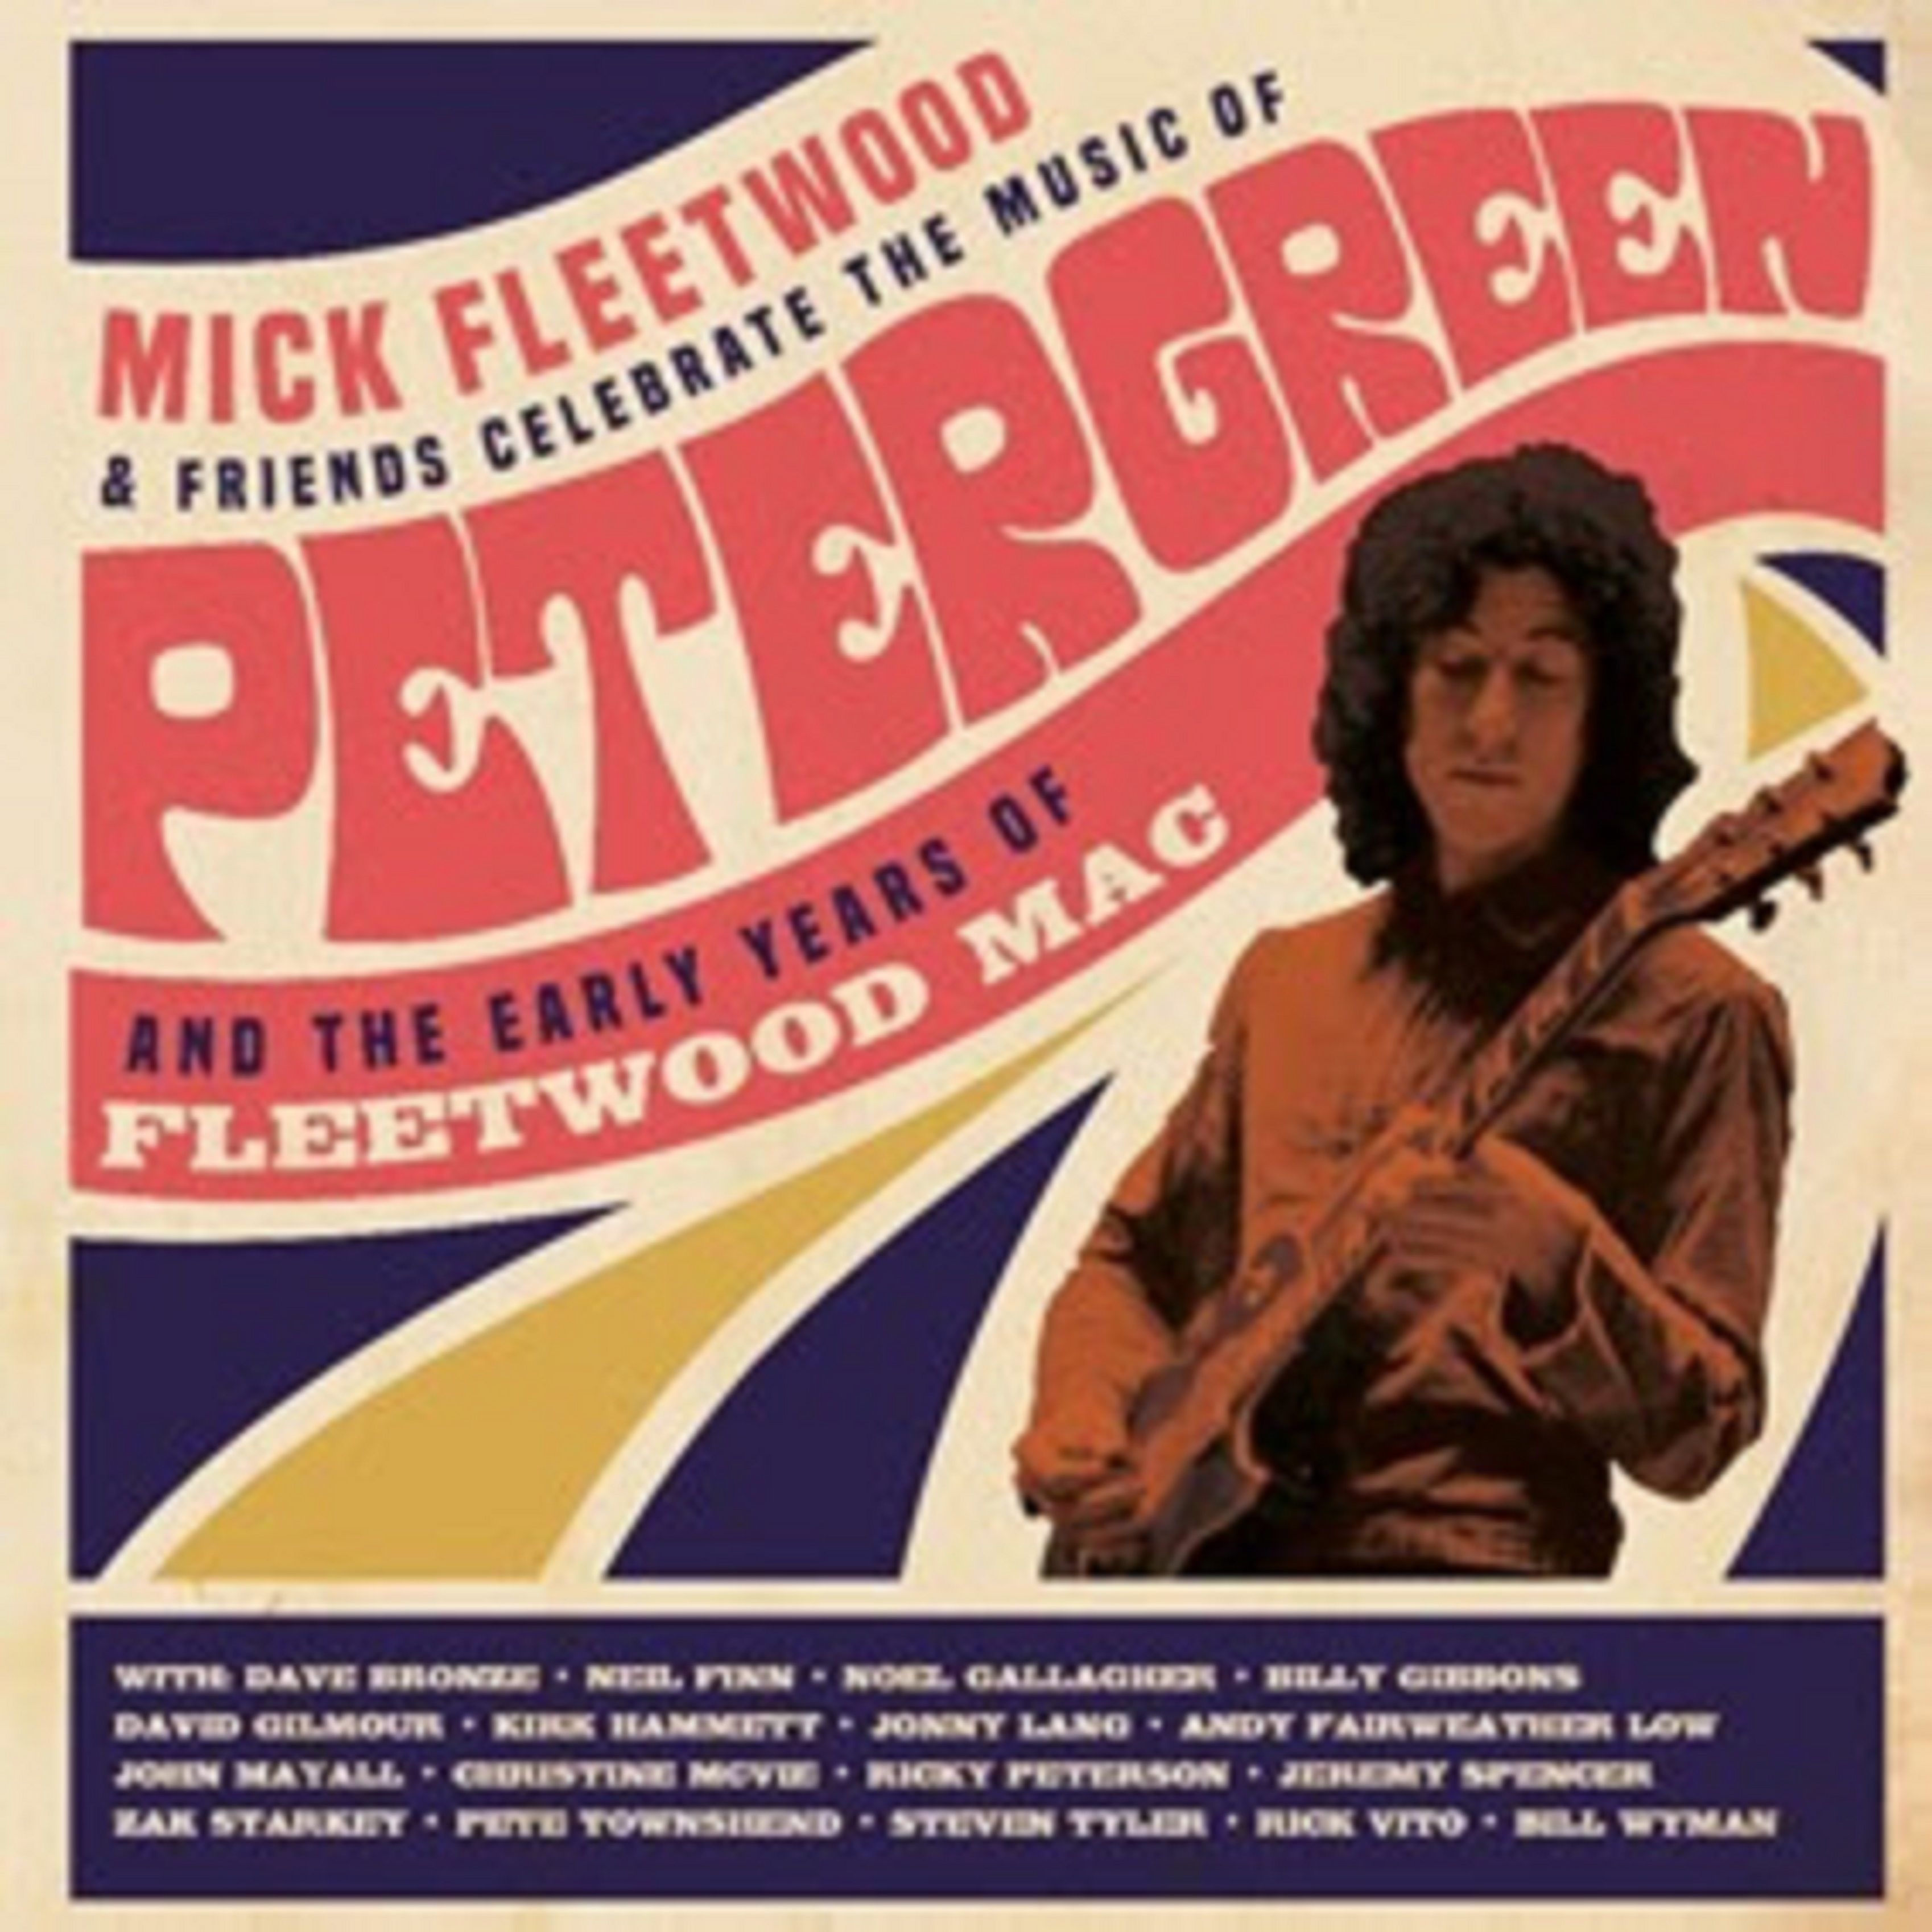 Mick Fleetwood & Friends Celebrate Peter Green